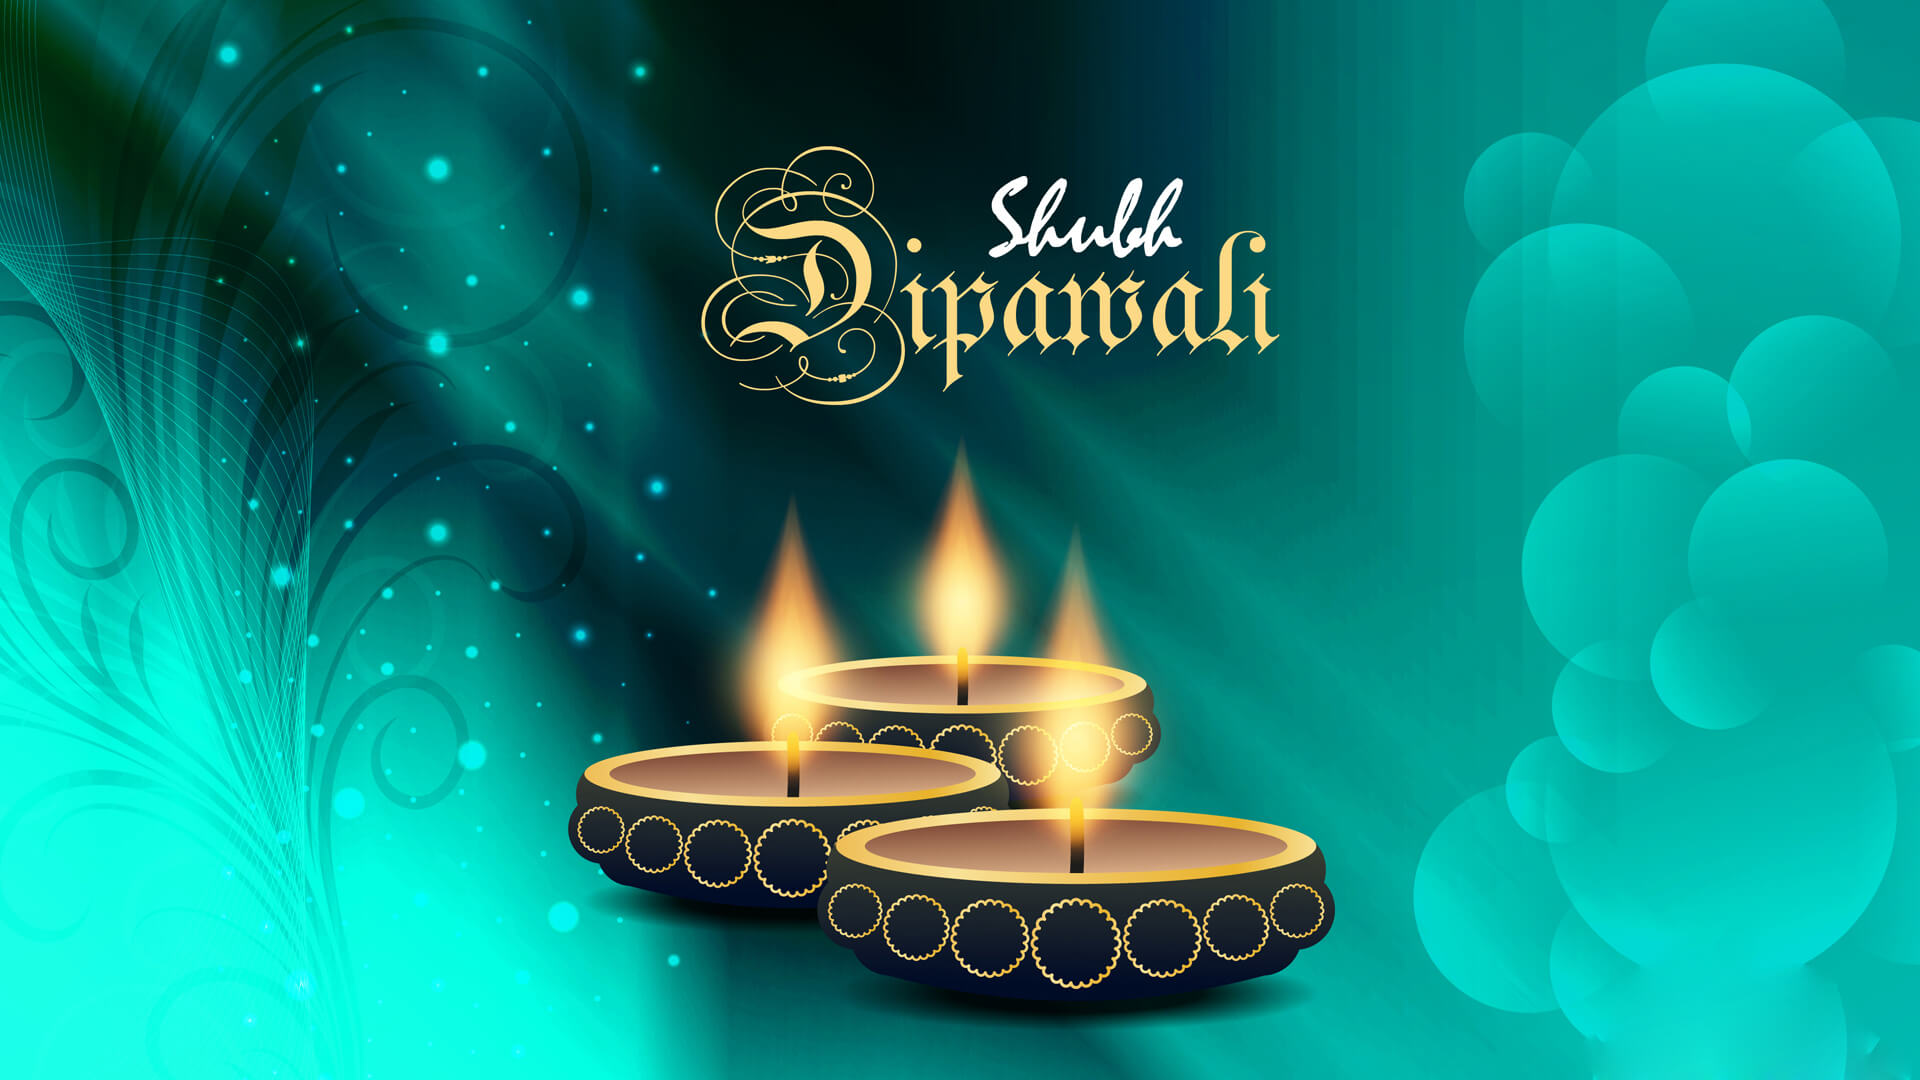 Shubh Dipawali English Wallpaper